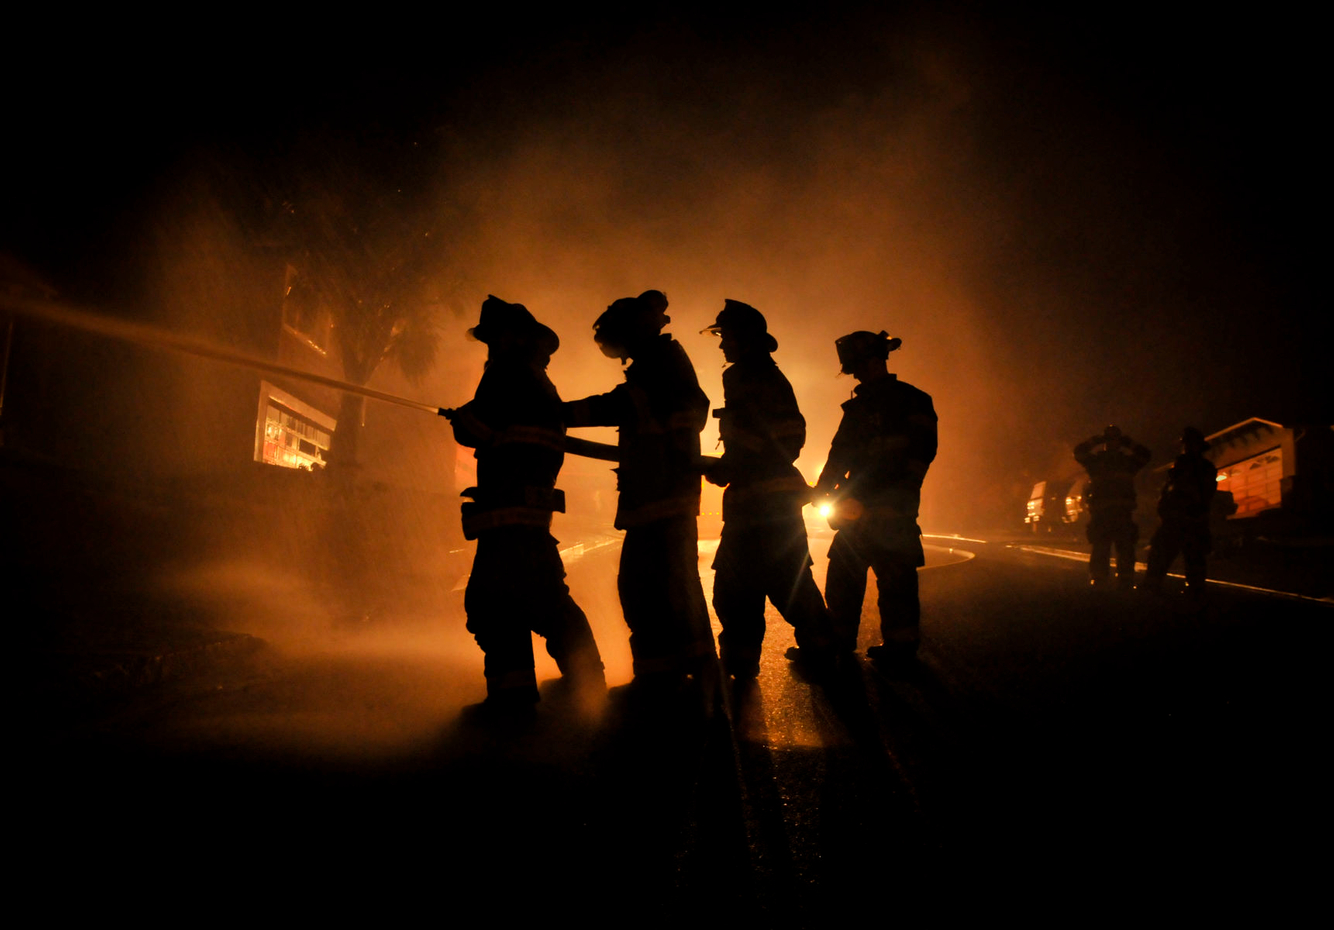 Firefighters aim a hose towards a burning house after a gas explosion